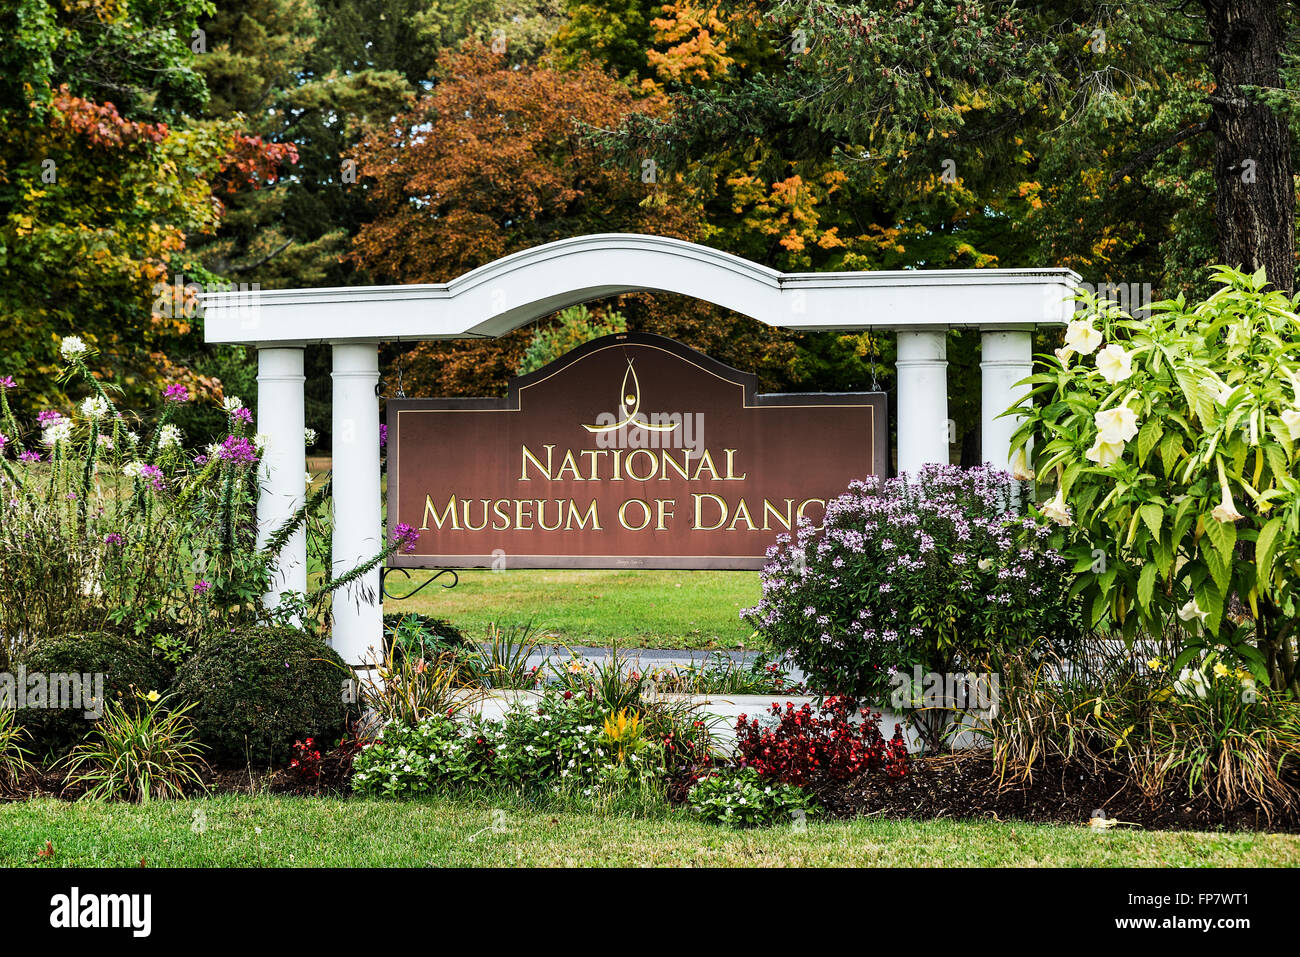 National Museum of Dance, Saratoga Spa State Park, Saratoga Springs, New York, USA - Stock Image